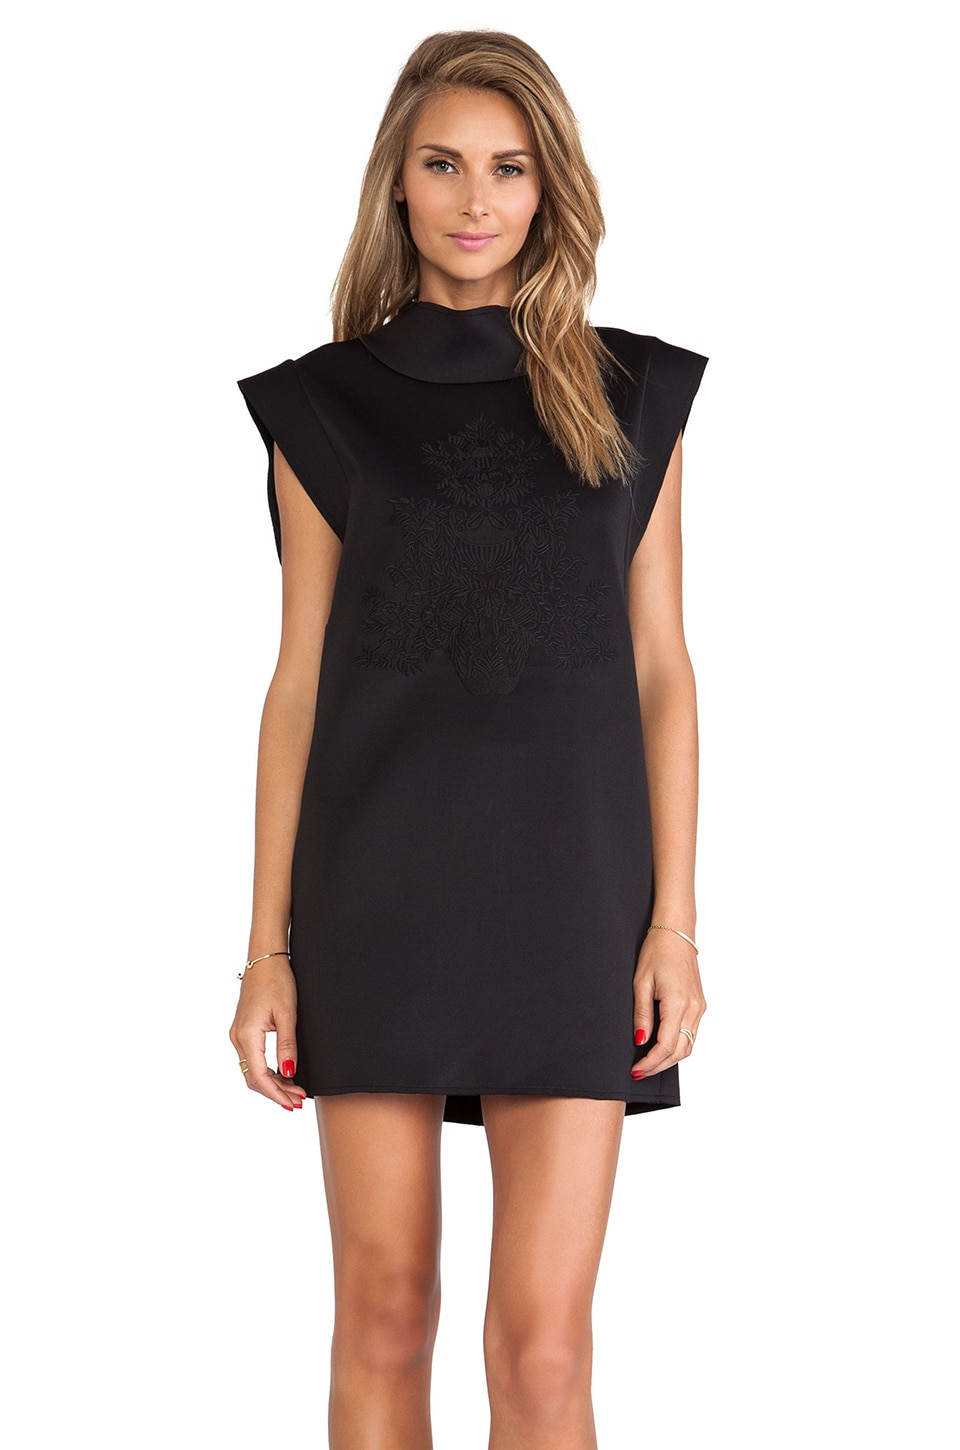 C/MEO Uprising Dress in Black